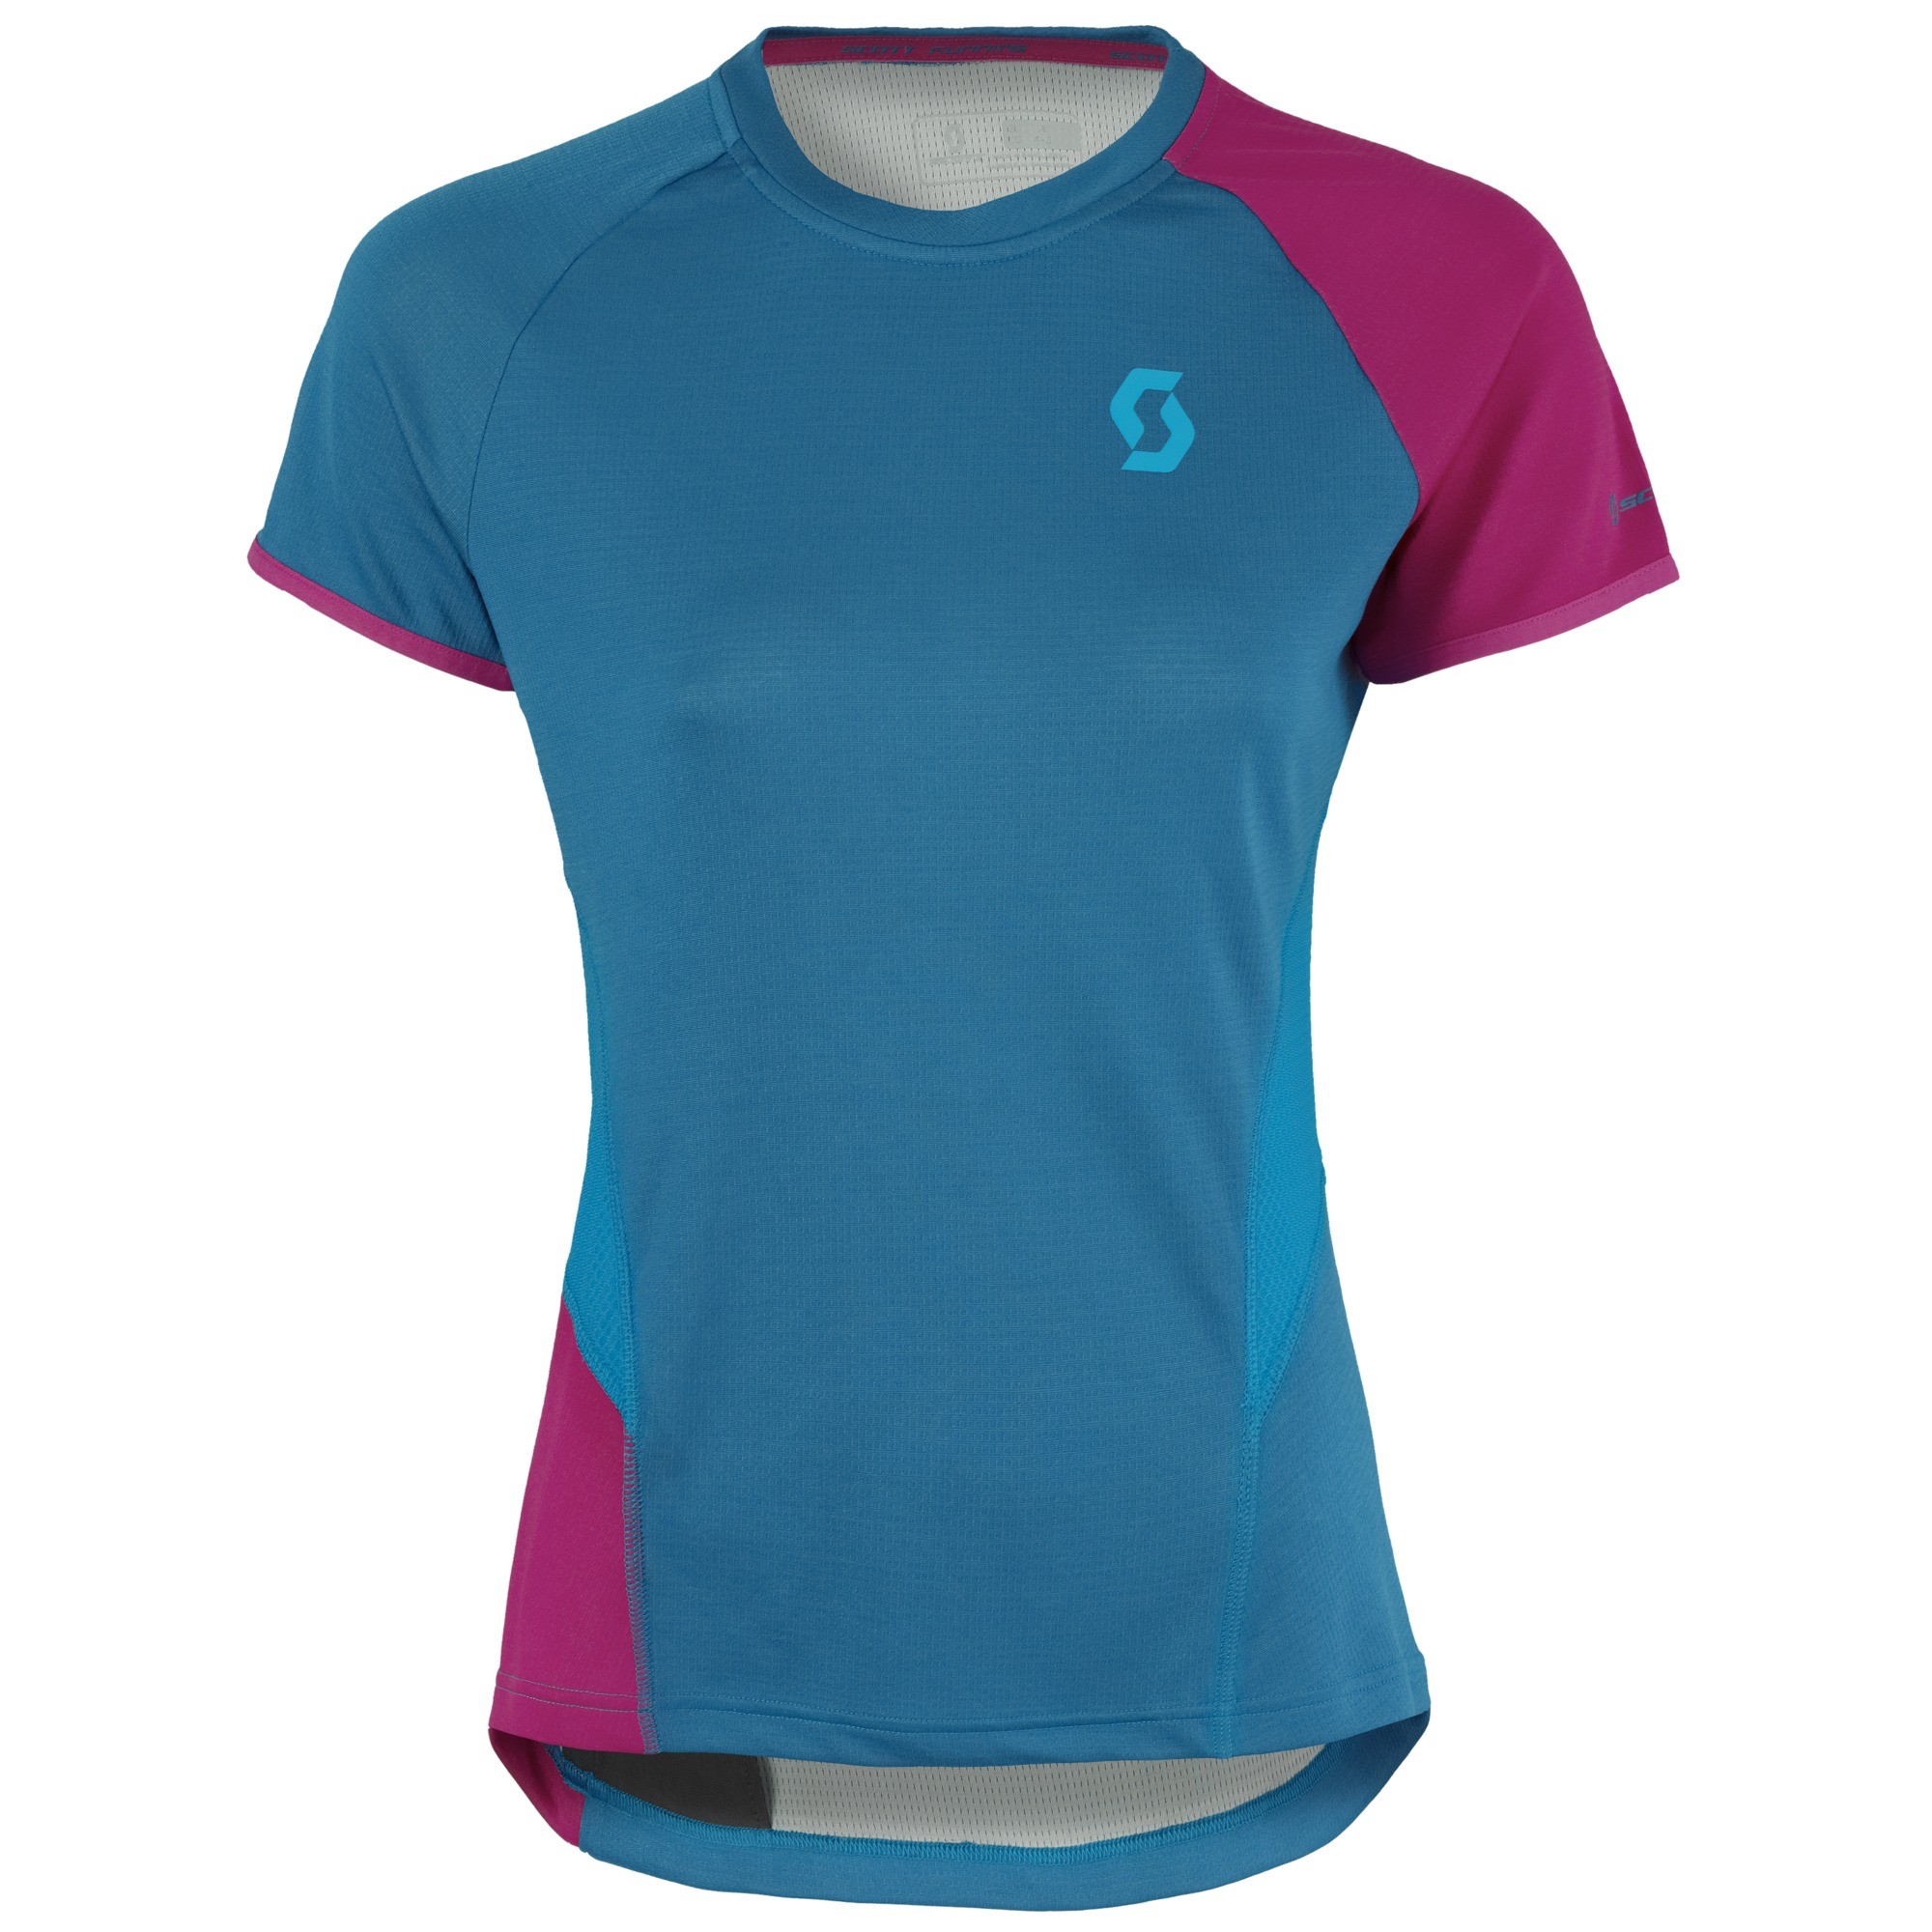 MAGLIA RUNNING SCOTT TRAIL RUN CREW SS SHIRT WOMEN 241667 BLUE PURPLE.jpg